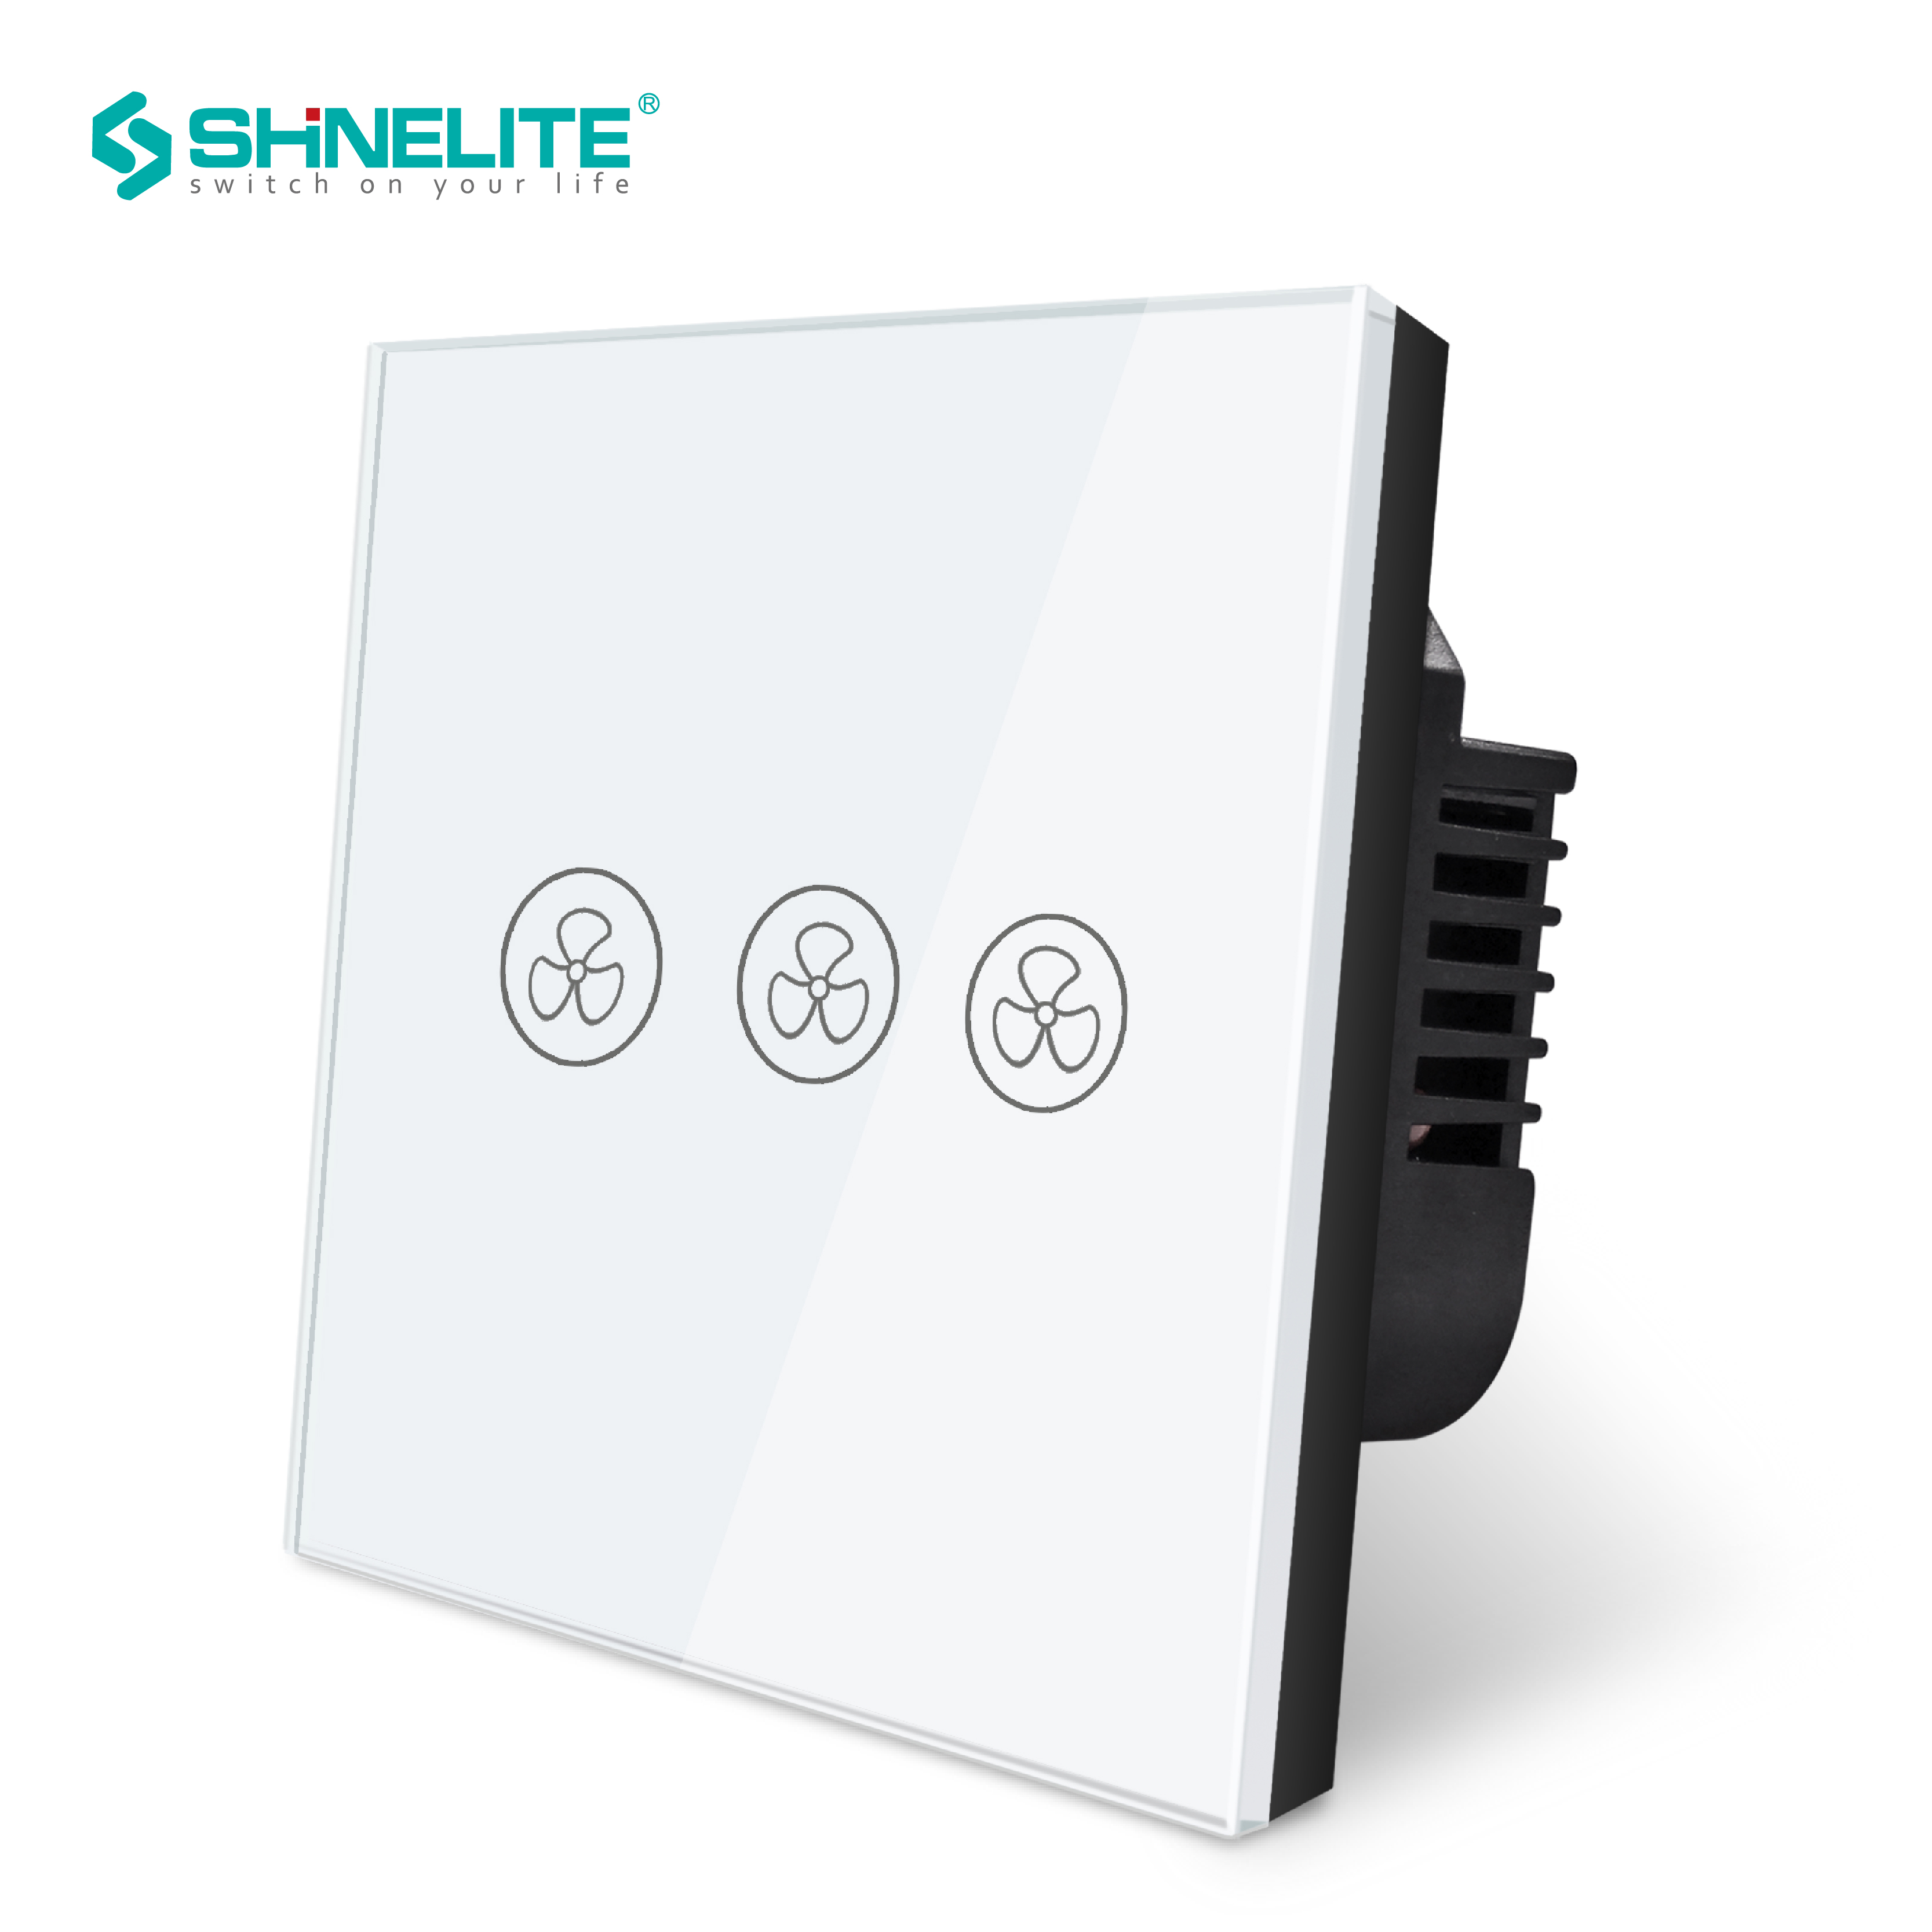 SHINELITE EU/UK Touch Screen Fan Switch,Speed Regulation,Crystal Glass Panel Fan Switch , AC 110~240V Home Wall Switch копилка настенная для мелочи 12 5 12см уп 1 18шт